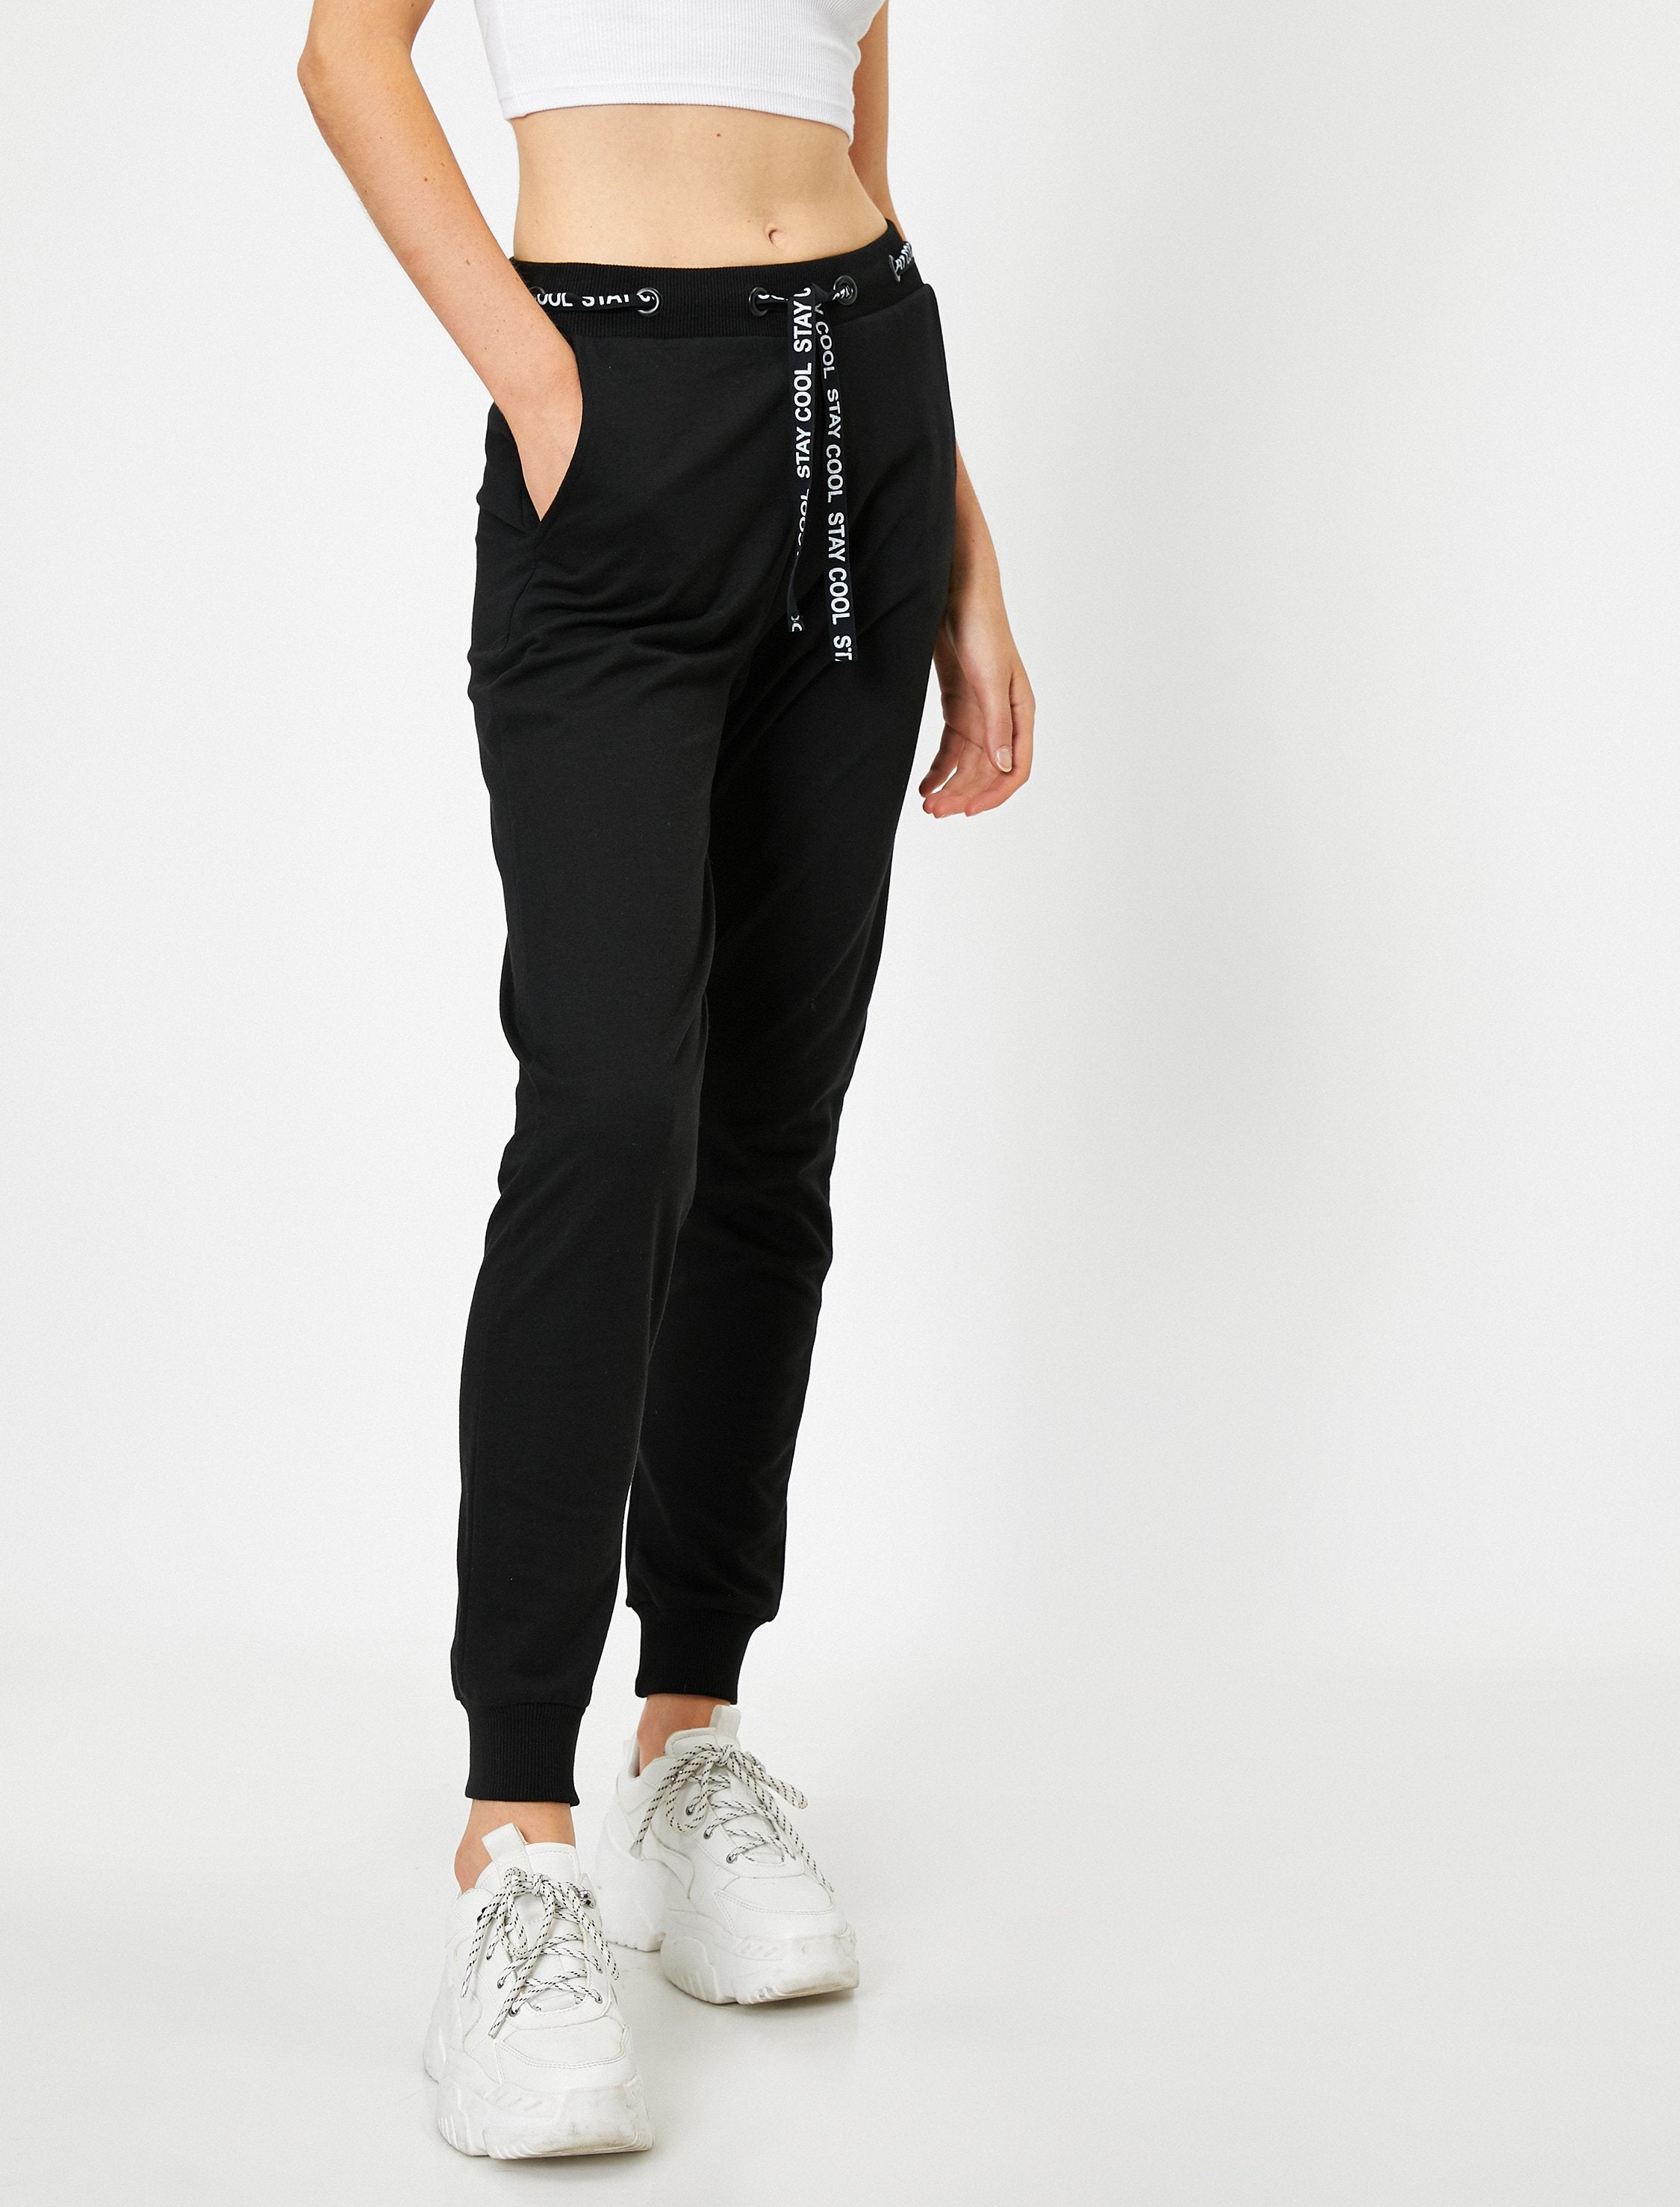 The 80's Jogger in Black